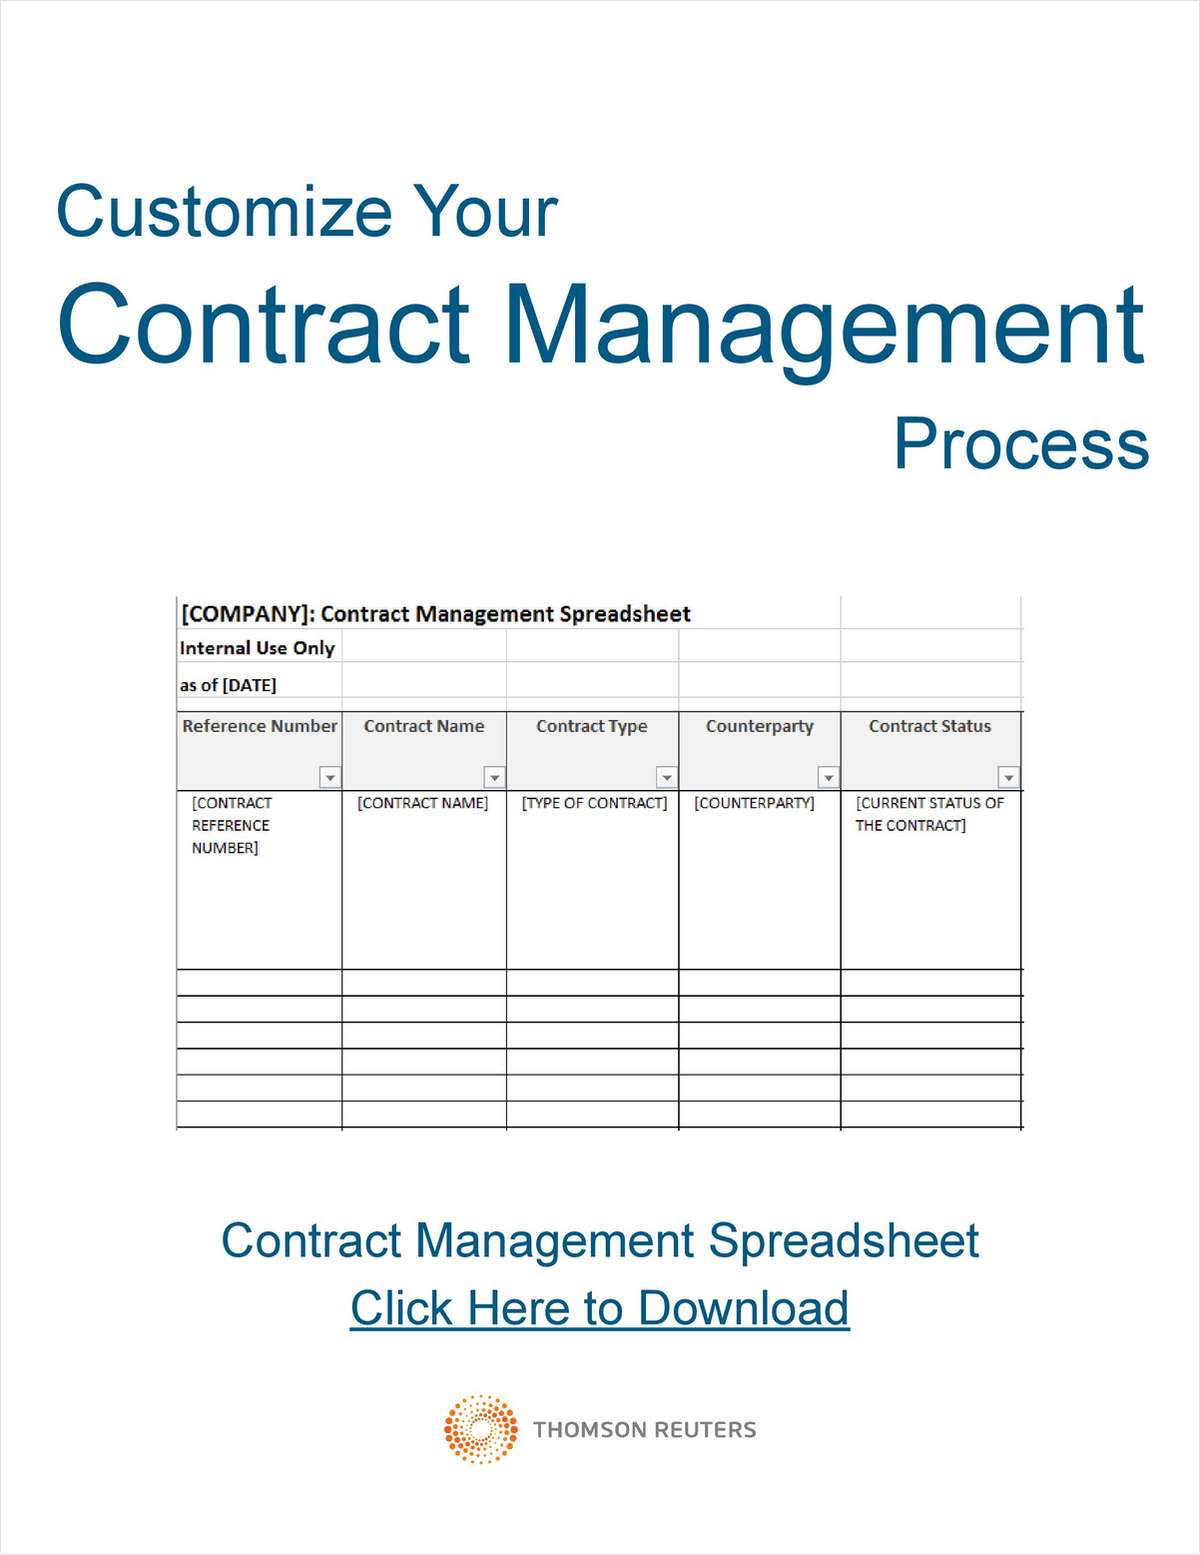 Contract management process guide pdf